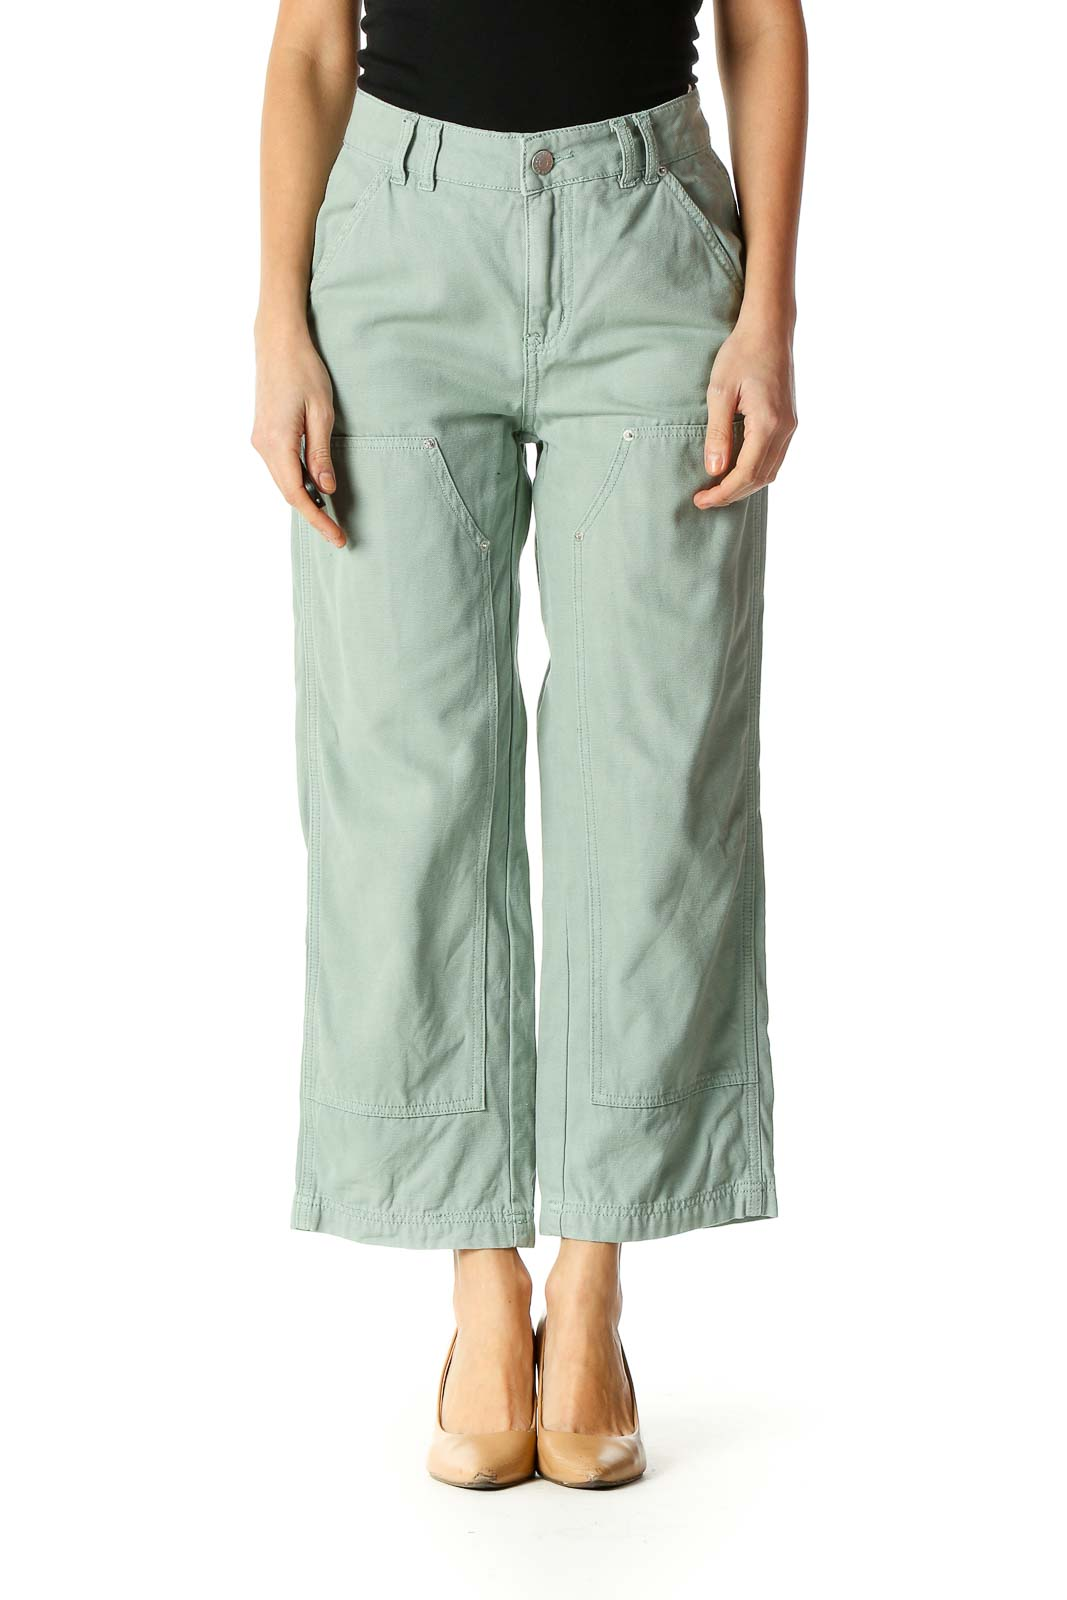 Green Casual Wide Leg Pants Front